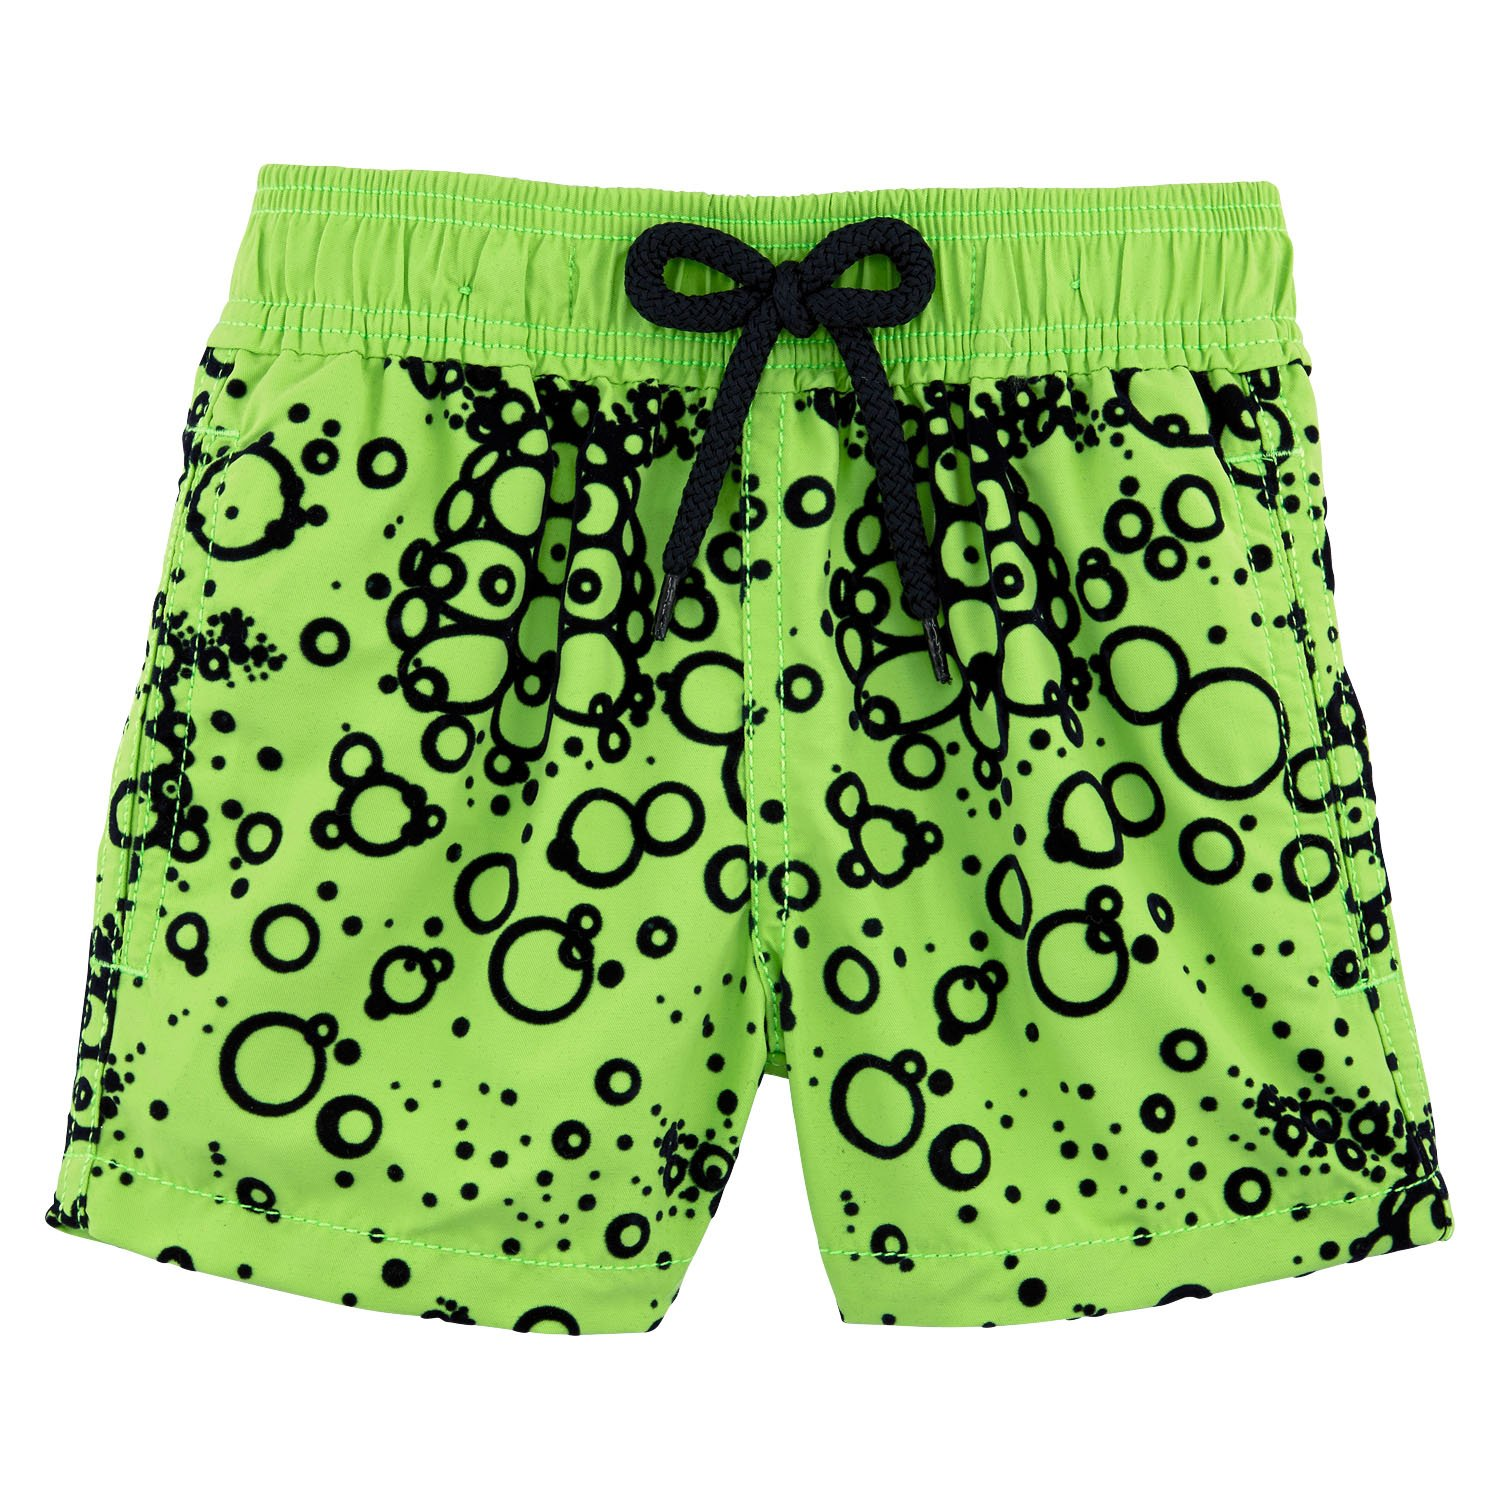 Vilebrequin - Flocked Bubbles Turtles Boy Swimwear  - Boys - 12 years - Wasabi by Vilebrequin